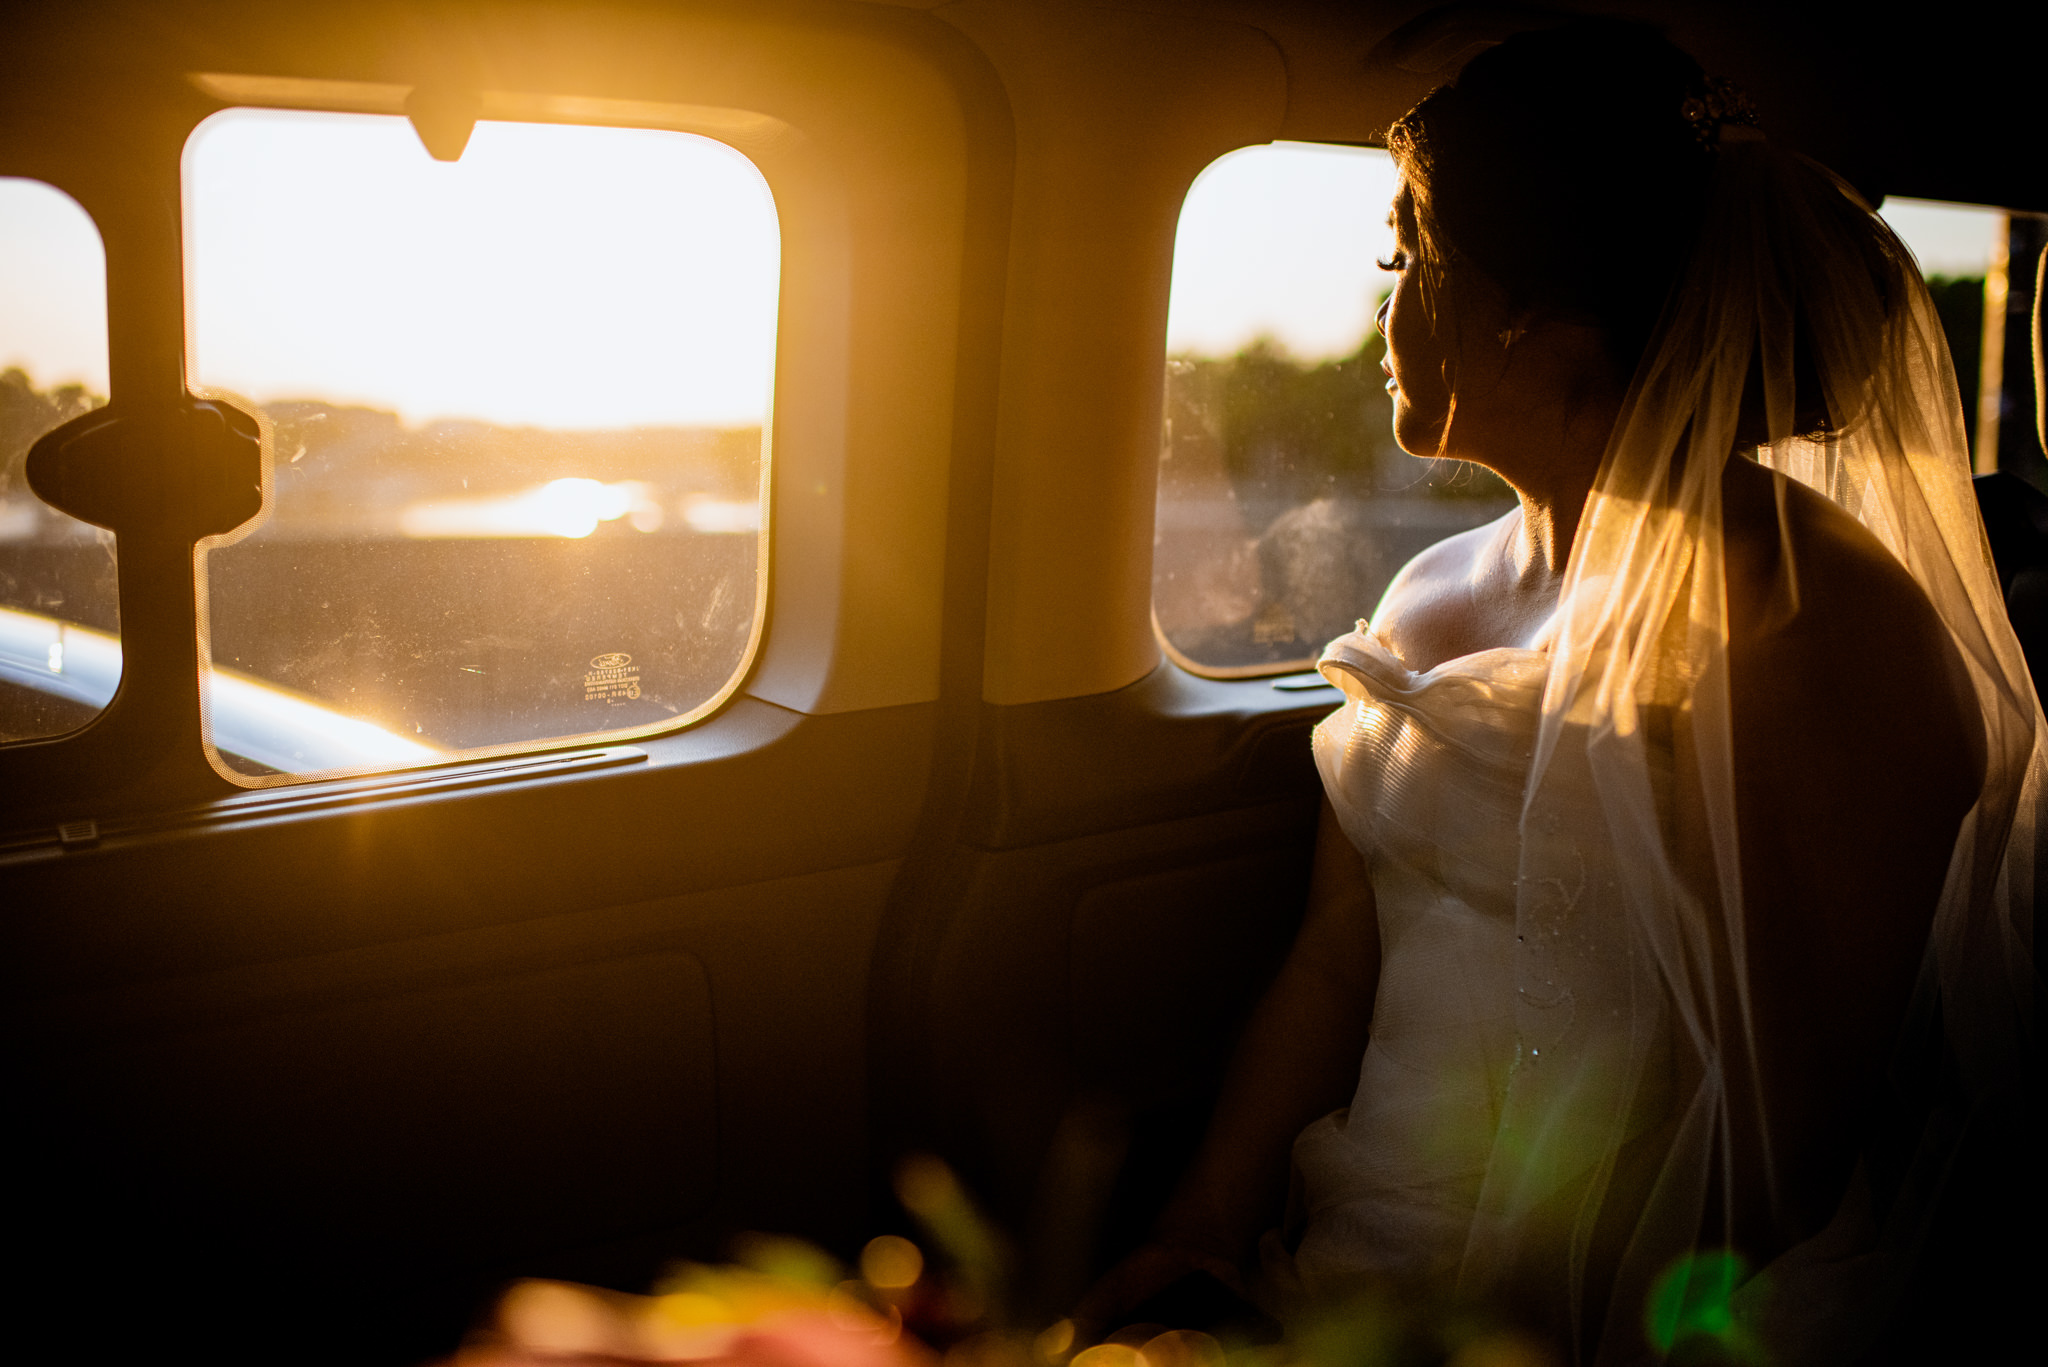 Warm yellow glow of sunrise shines on bride as she faces out a taxi window.